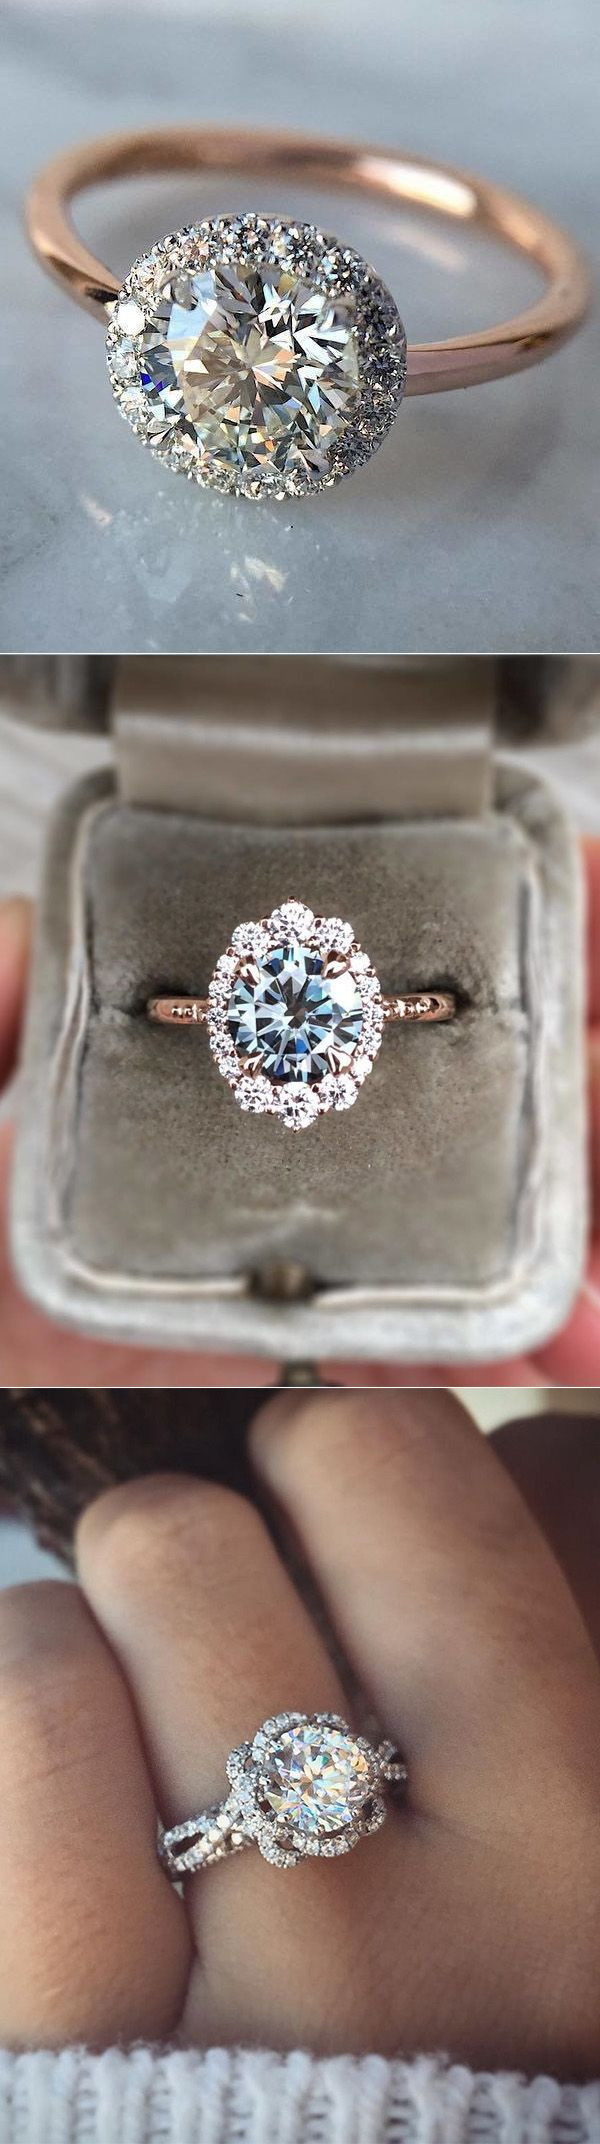 20 Dazzling engagement ring ideas for all brides in 2018